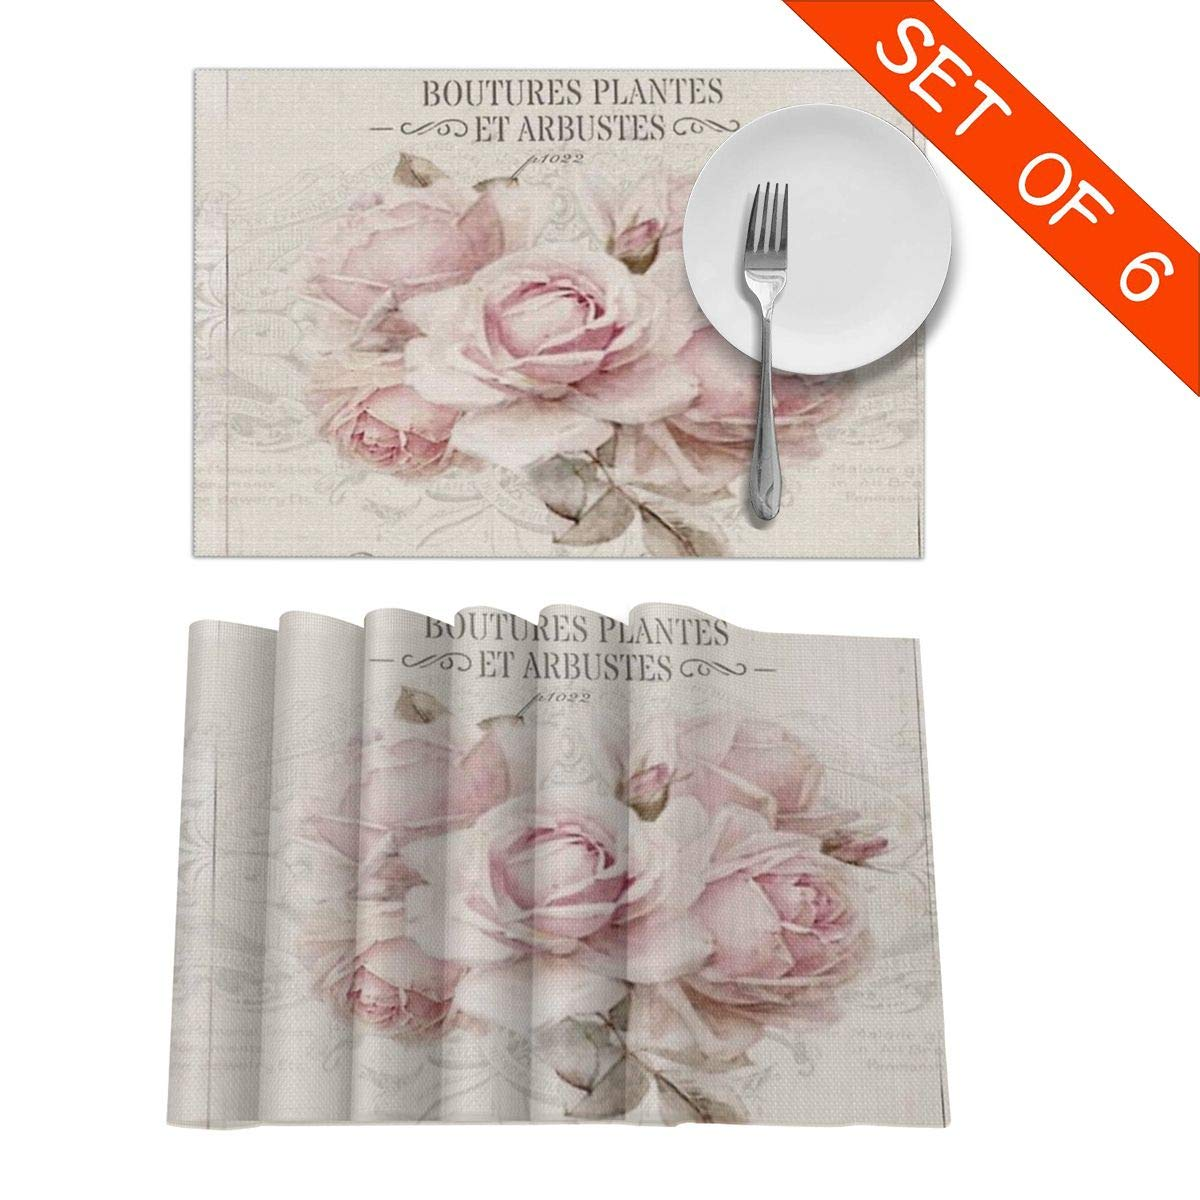 BlueBling French Shabby Chic Rectangular Table Placemats Set of 6 Table Mats Good Vibes Skid-Proof Heat-Resistant Stain Resistant Kitchen Mats for Dining Table Easy to Clean 18 X 12 in